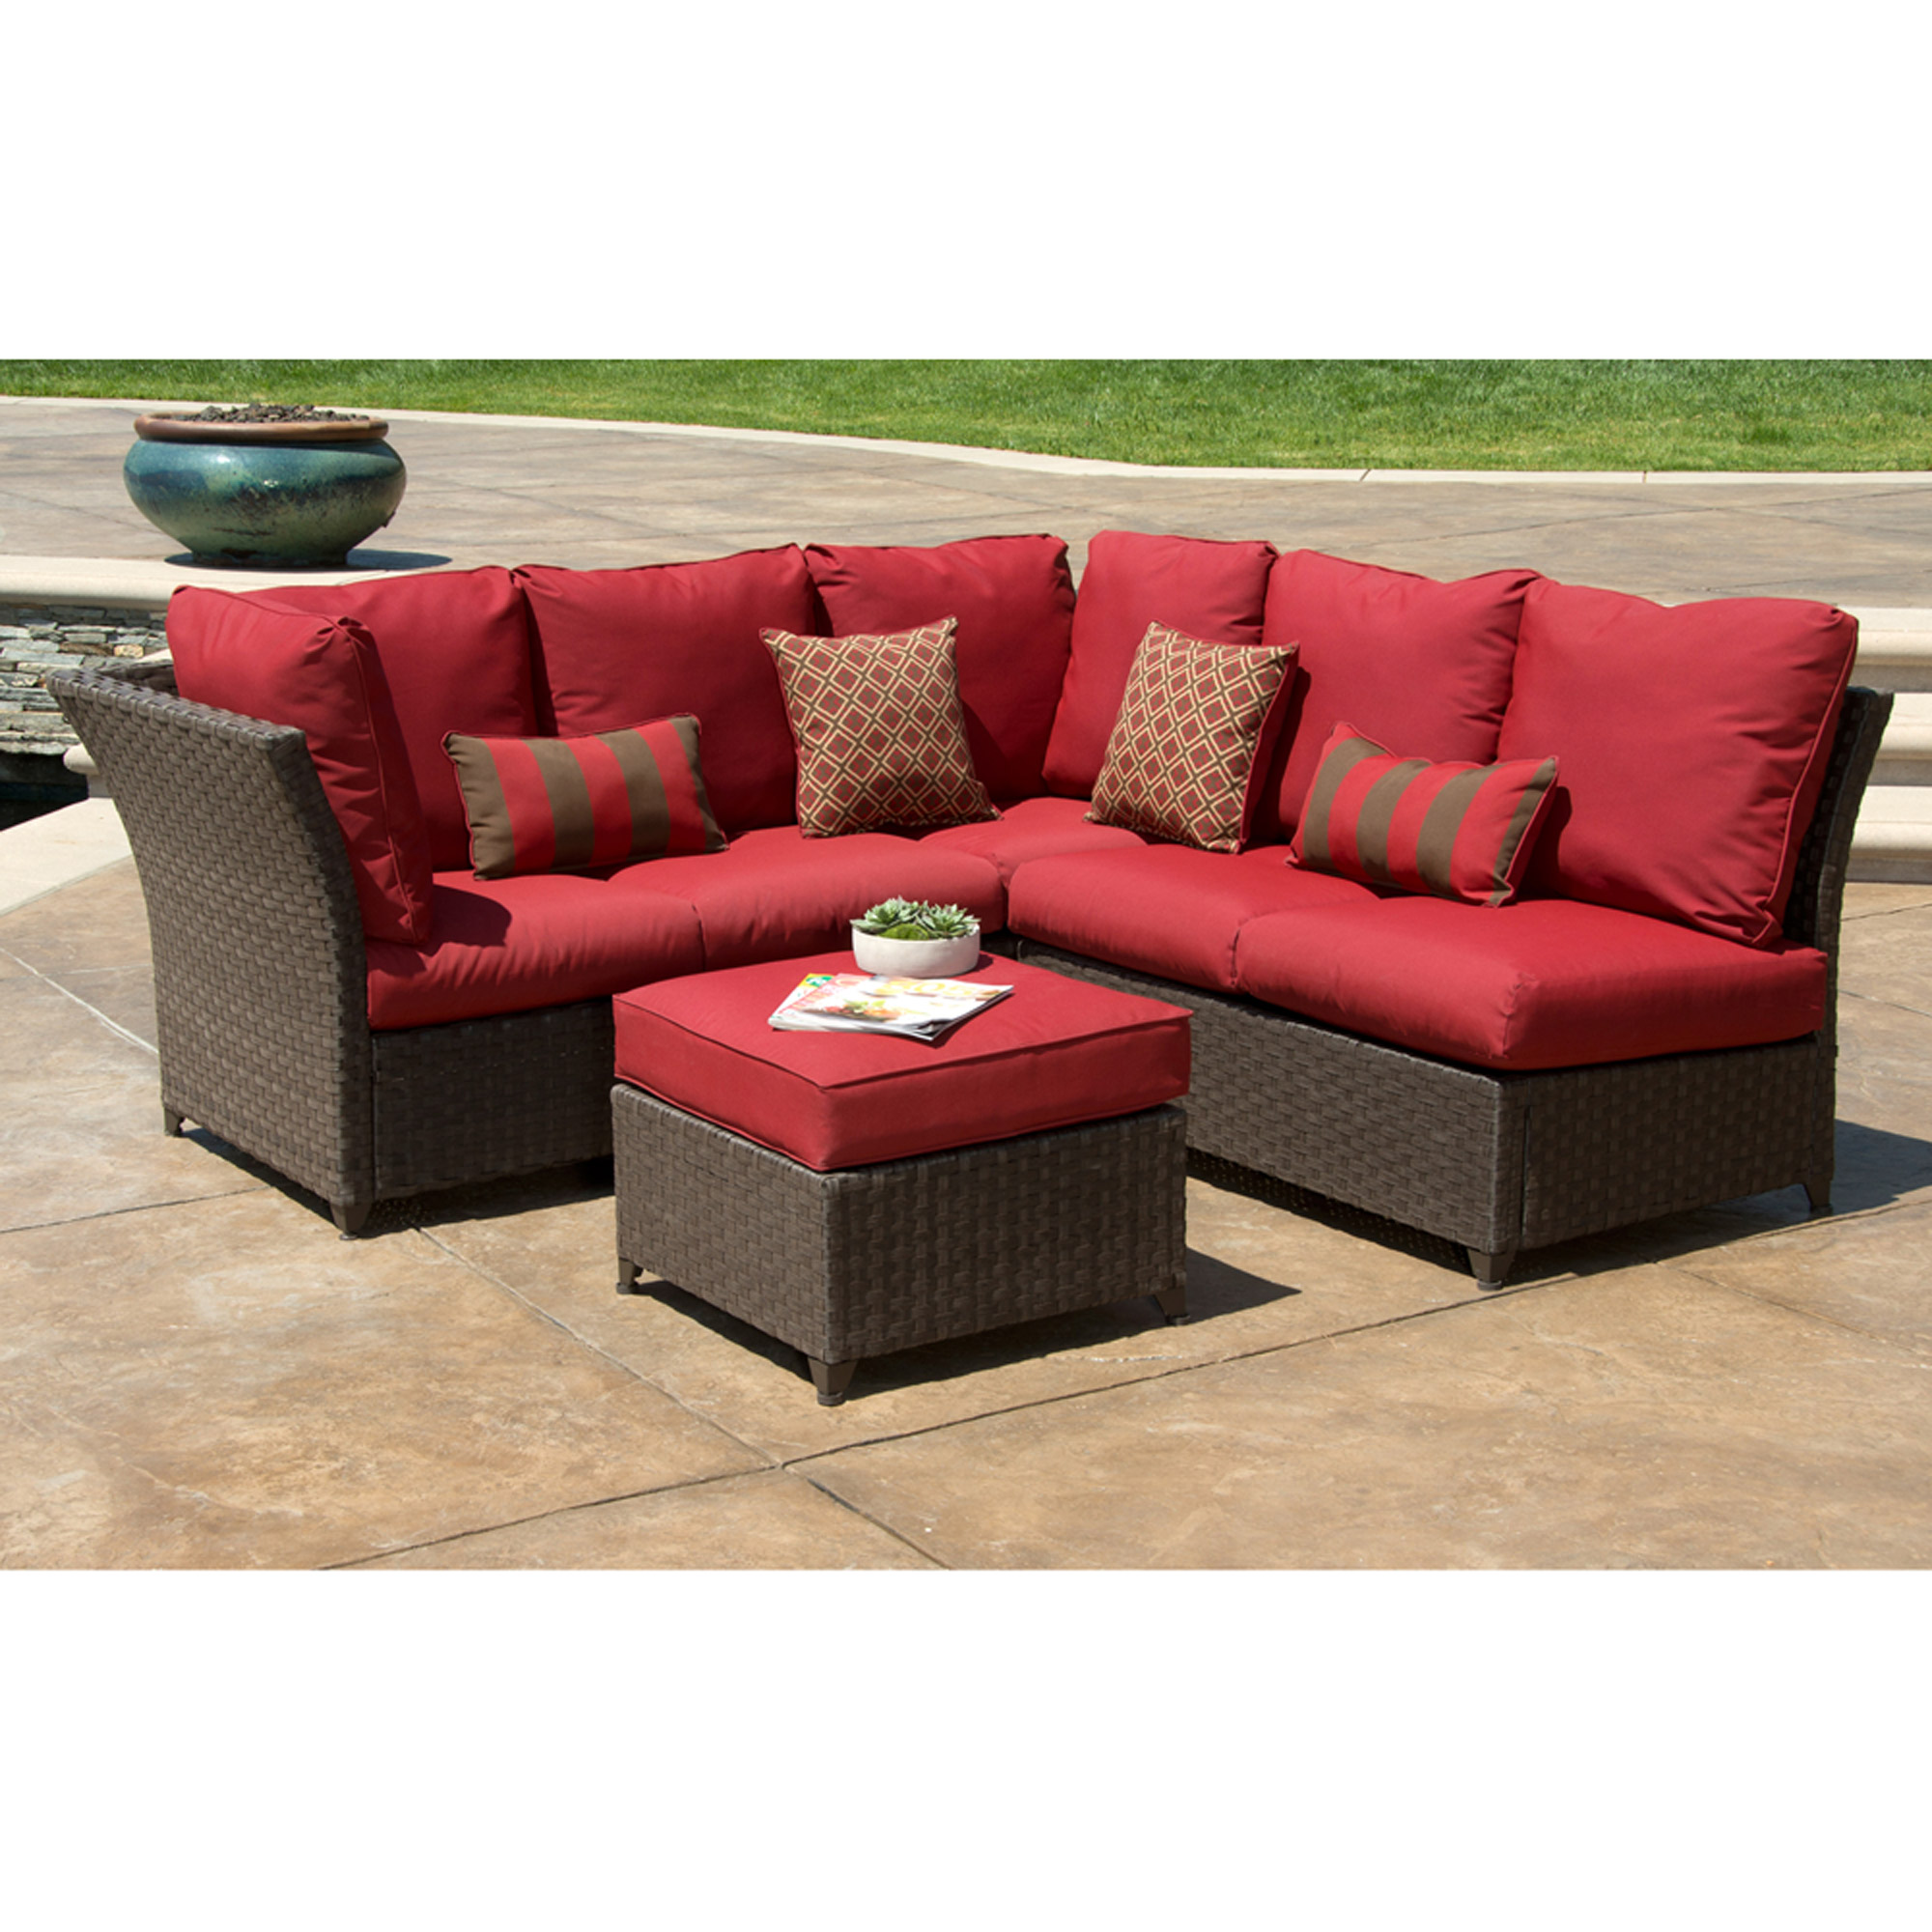 better homes and gardens rushreed 3-piece outdoor sectional